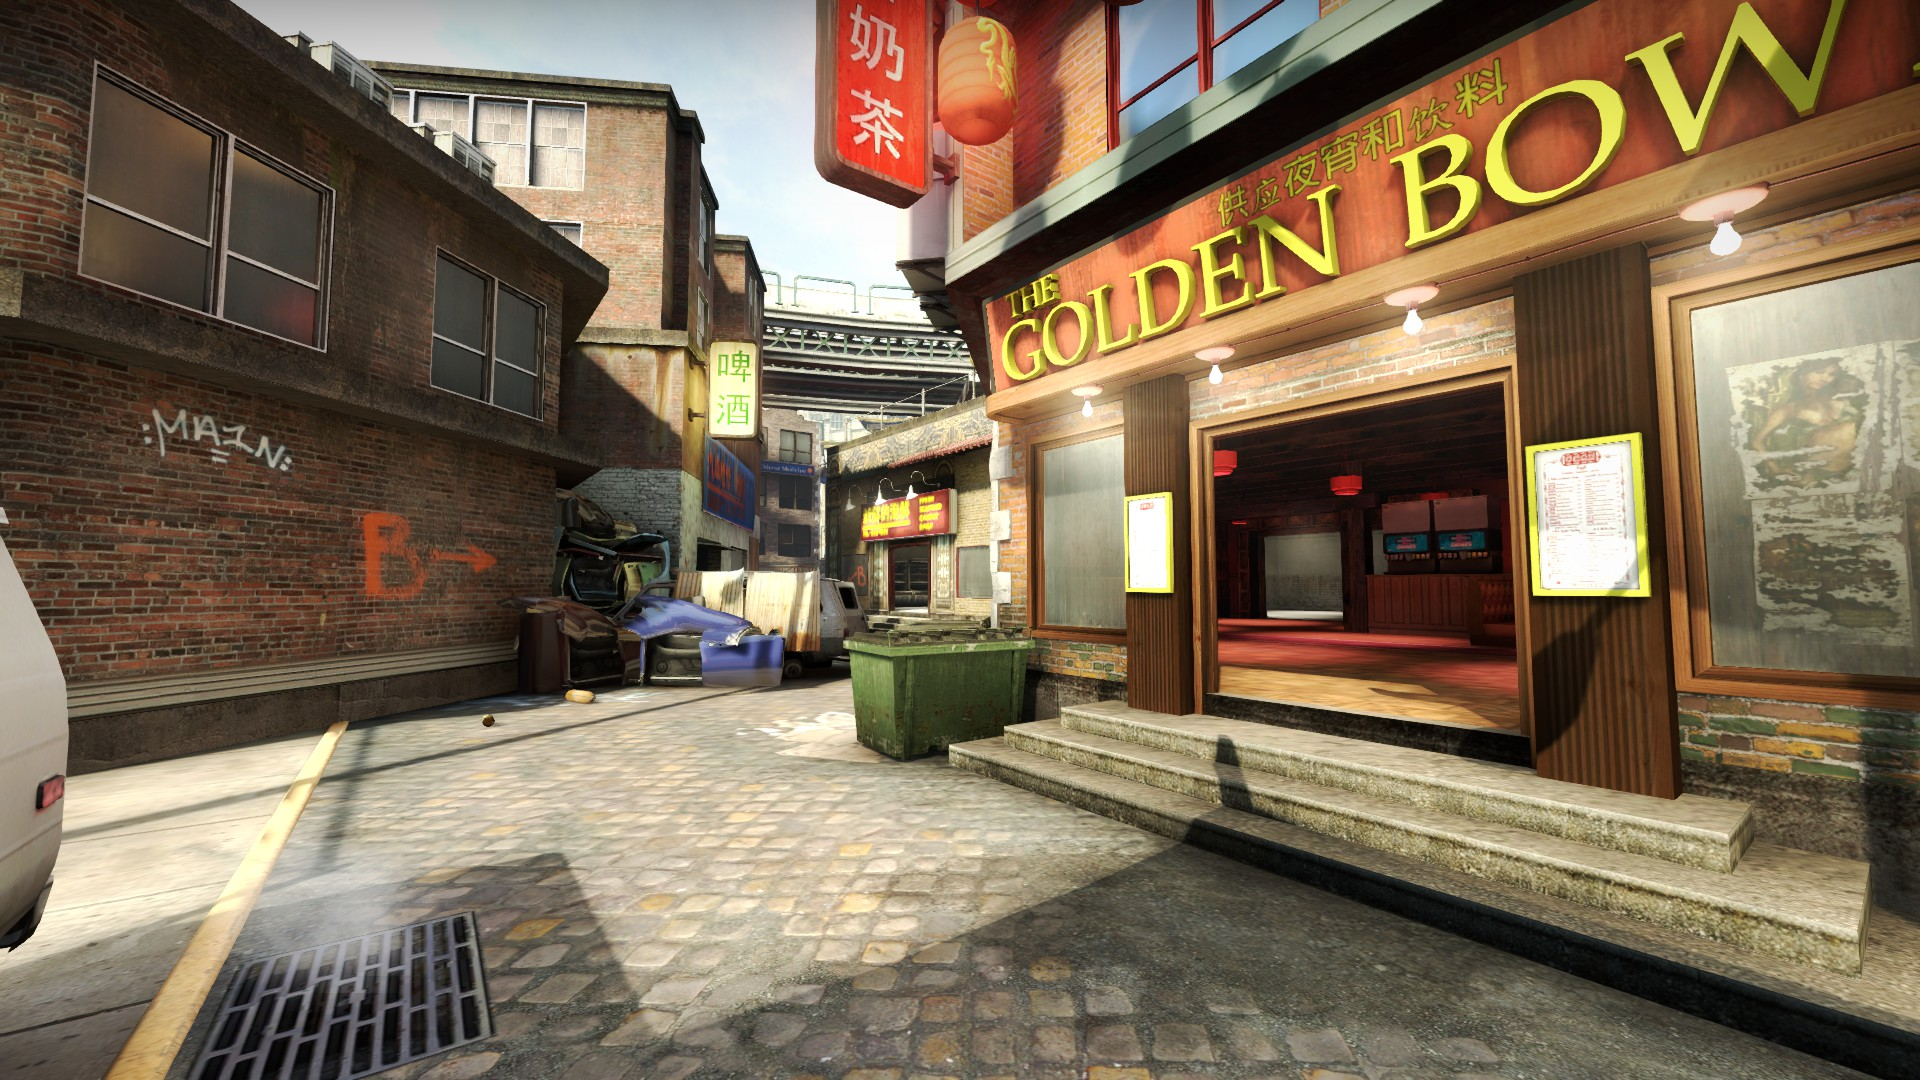 CS:GO is now free-to-play in China if users verify their